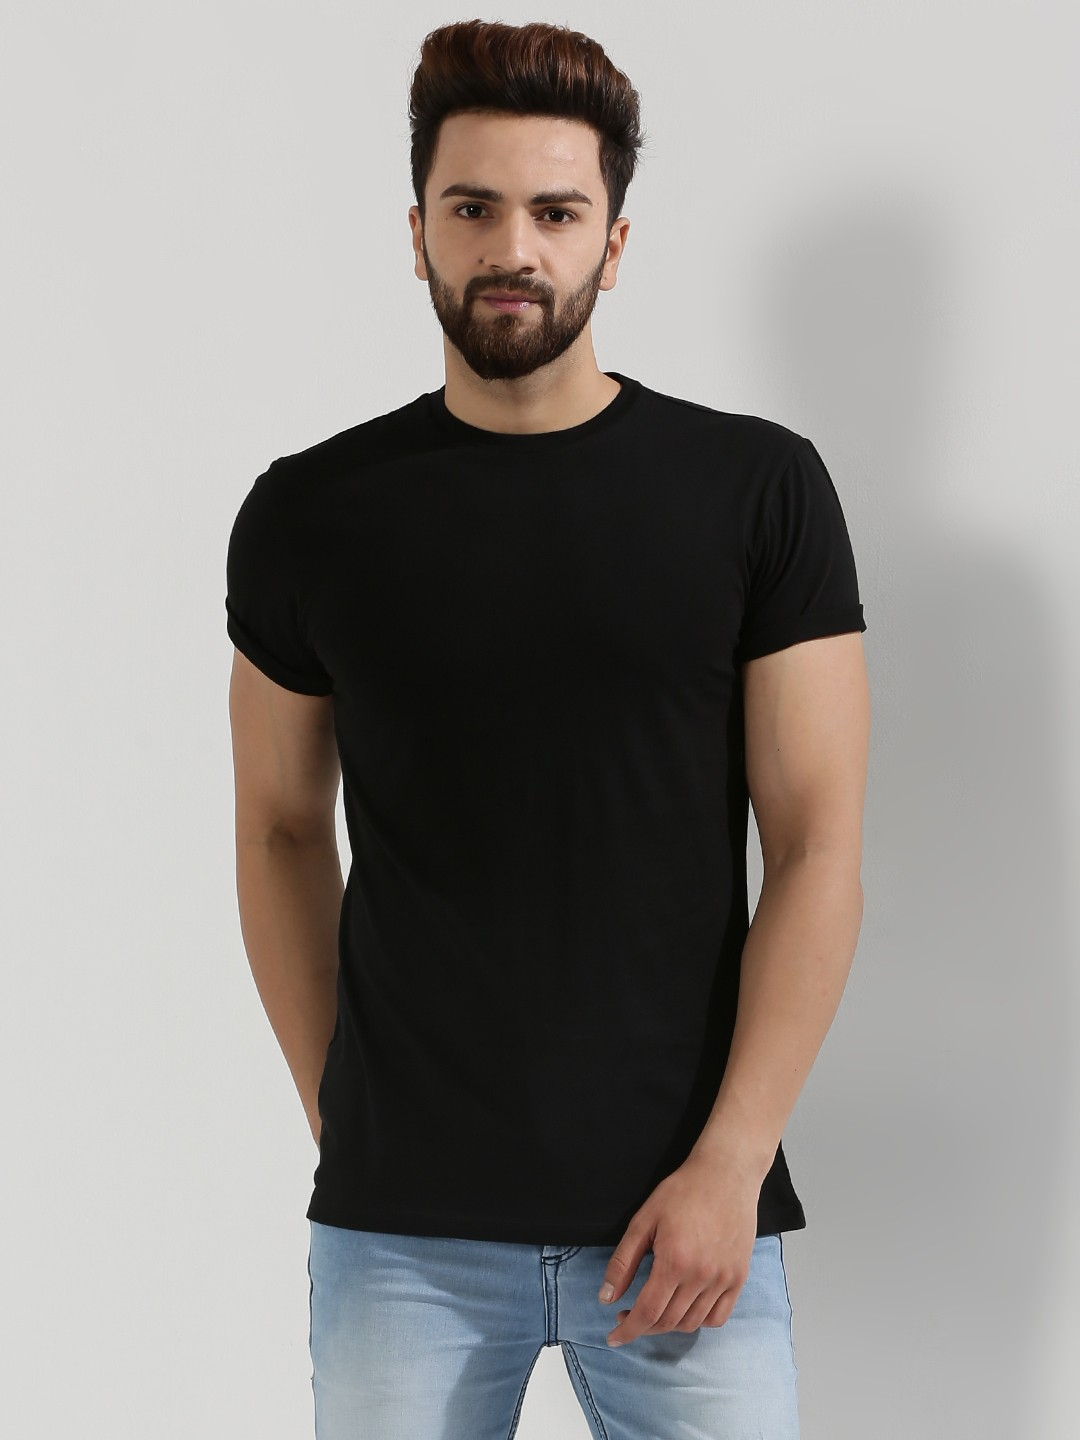 Black t shirt man - Koovs Crew Neck T Shirt